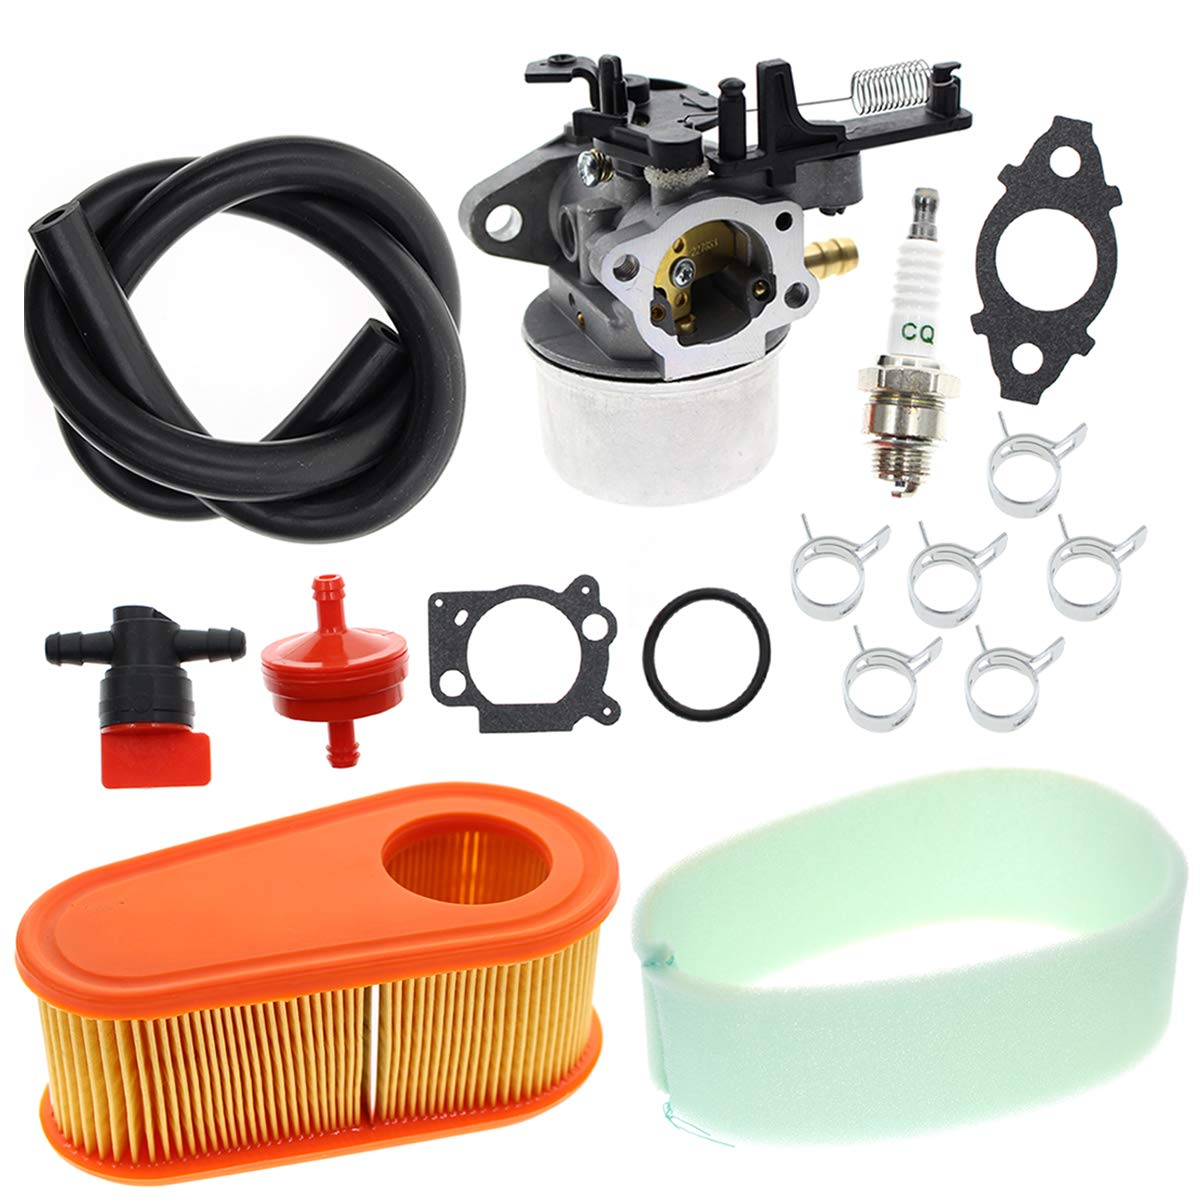 Carbhub 591137 Carburetor for Briggs and Stratton 591137 590948 775EX Lawn Mower Engine Carb 795066 796254 with Air Filter - 590948 775EX Carb by Carbhub